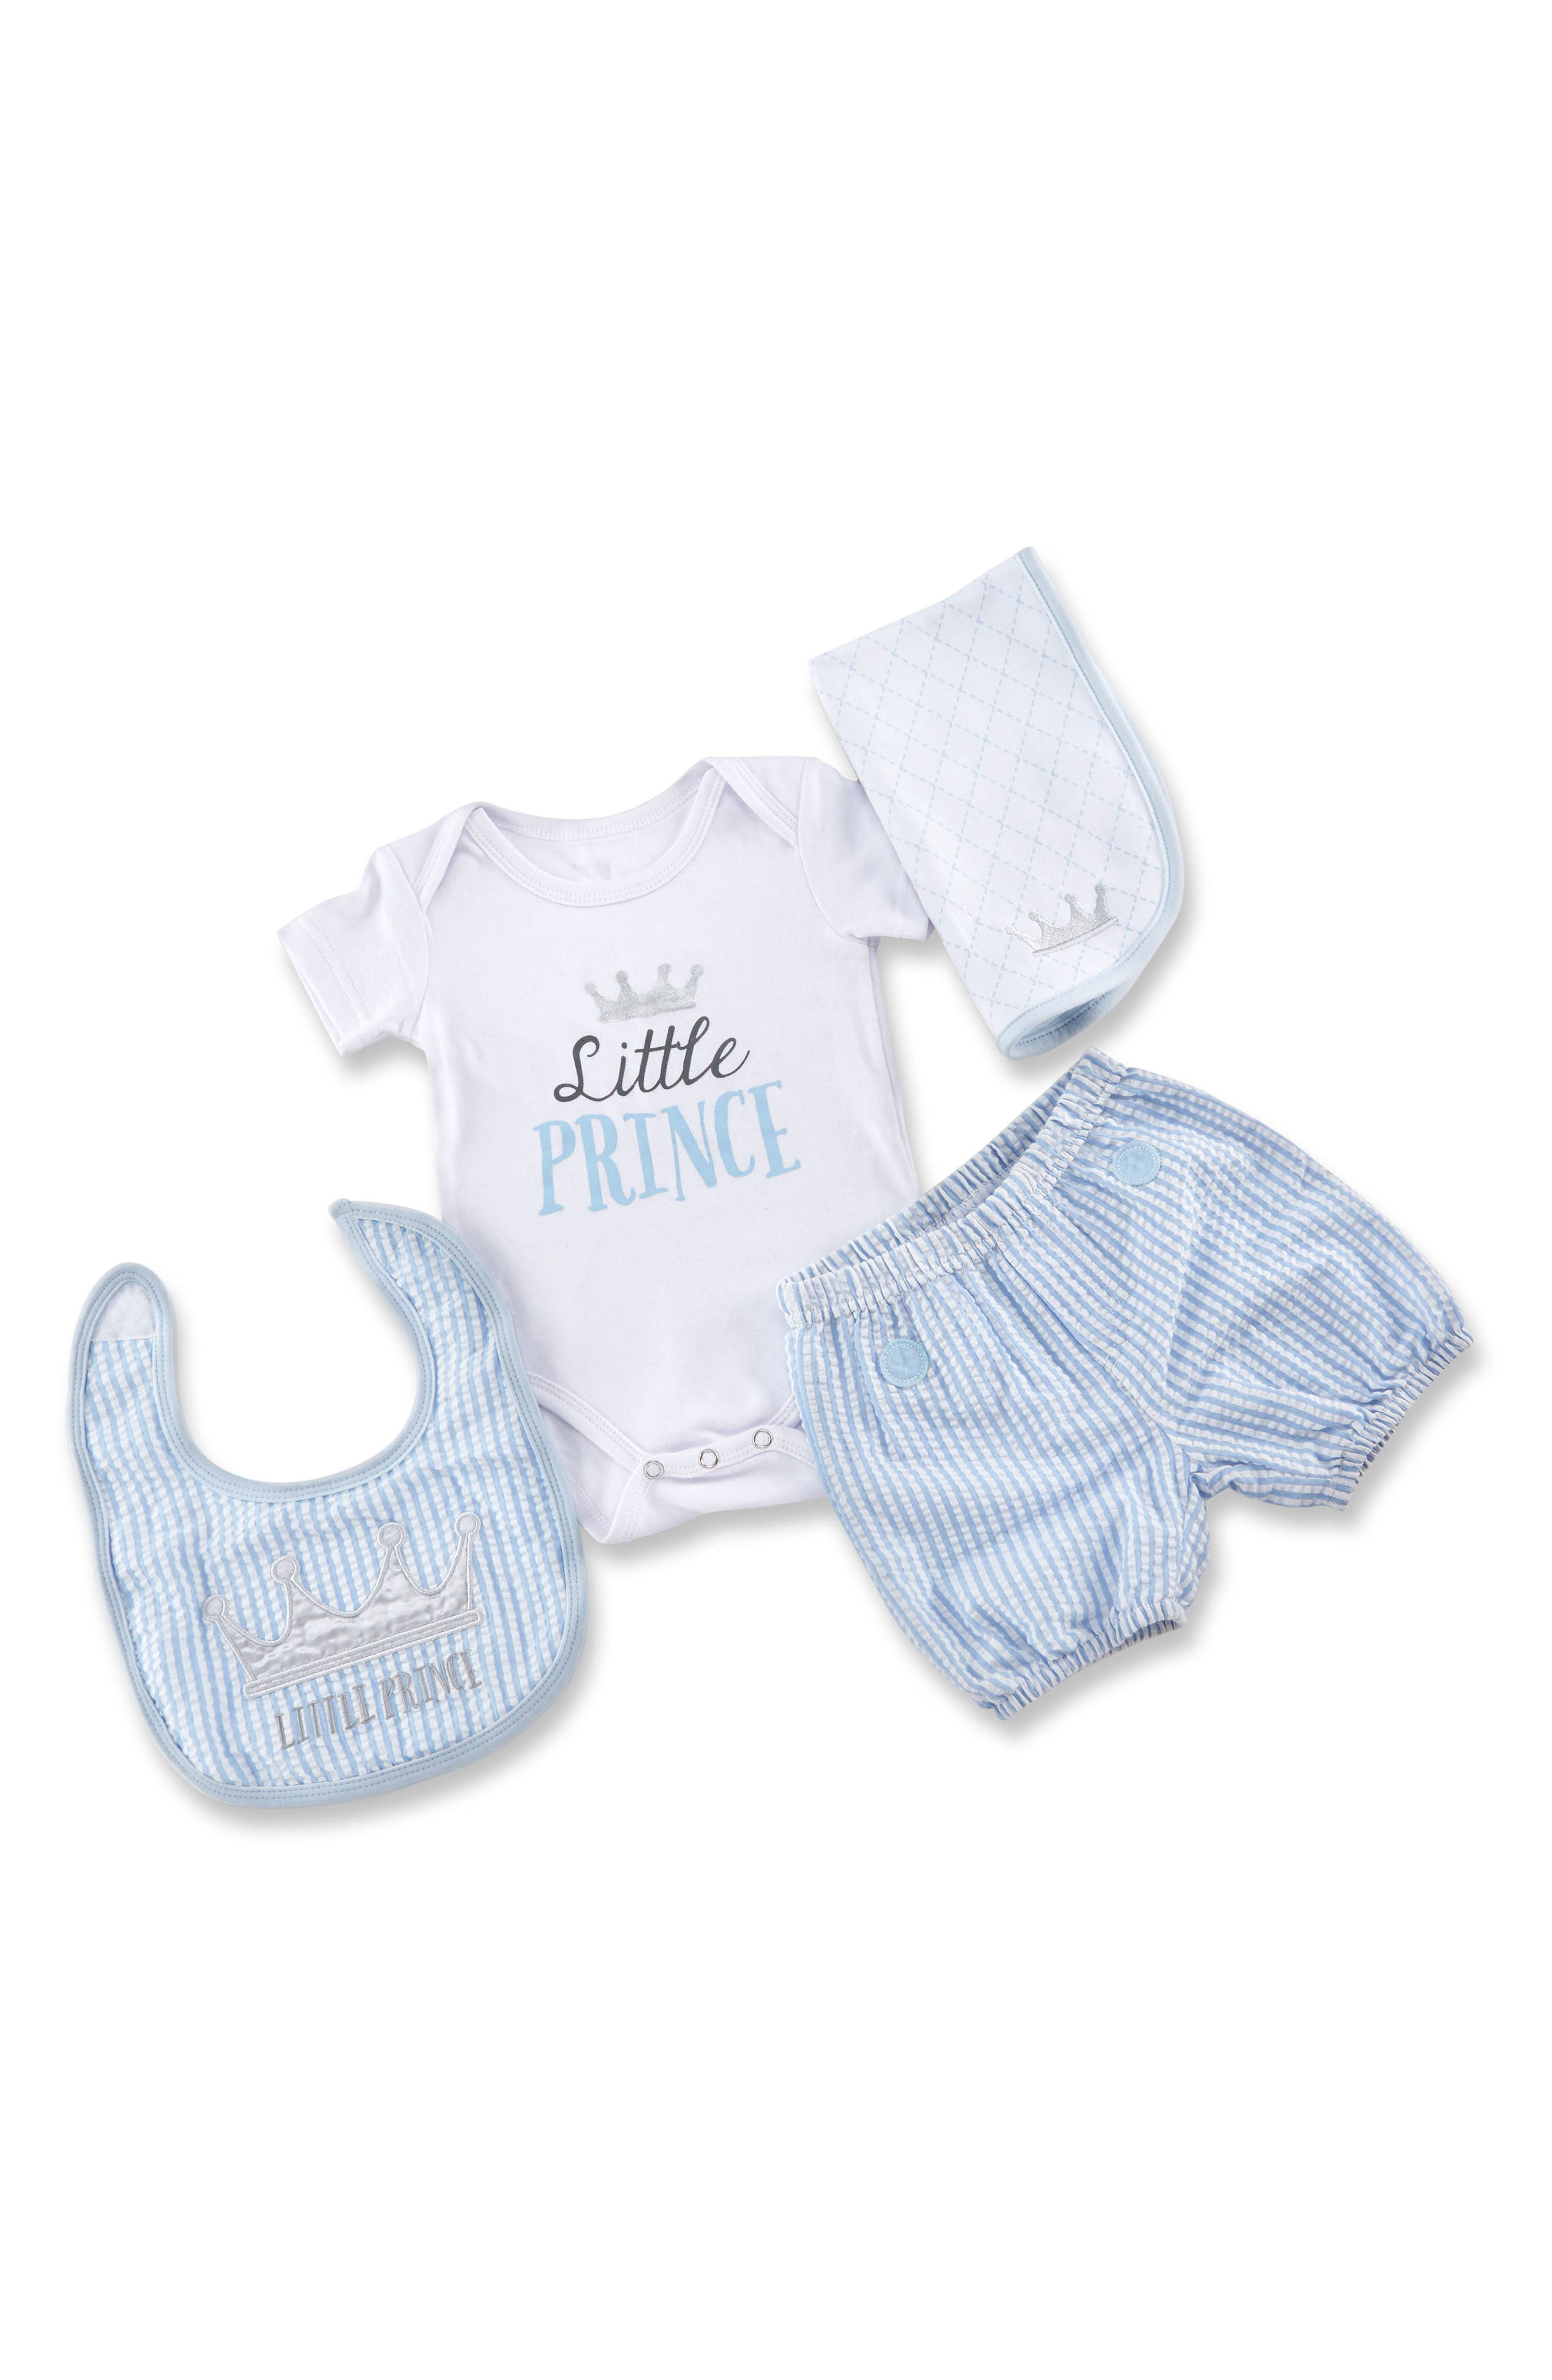 Little Prince Gift Set,                             Main thumbnail 1, color,                             Blue, White And Silver